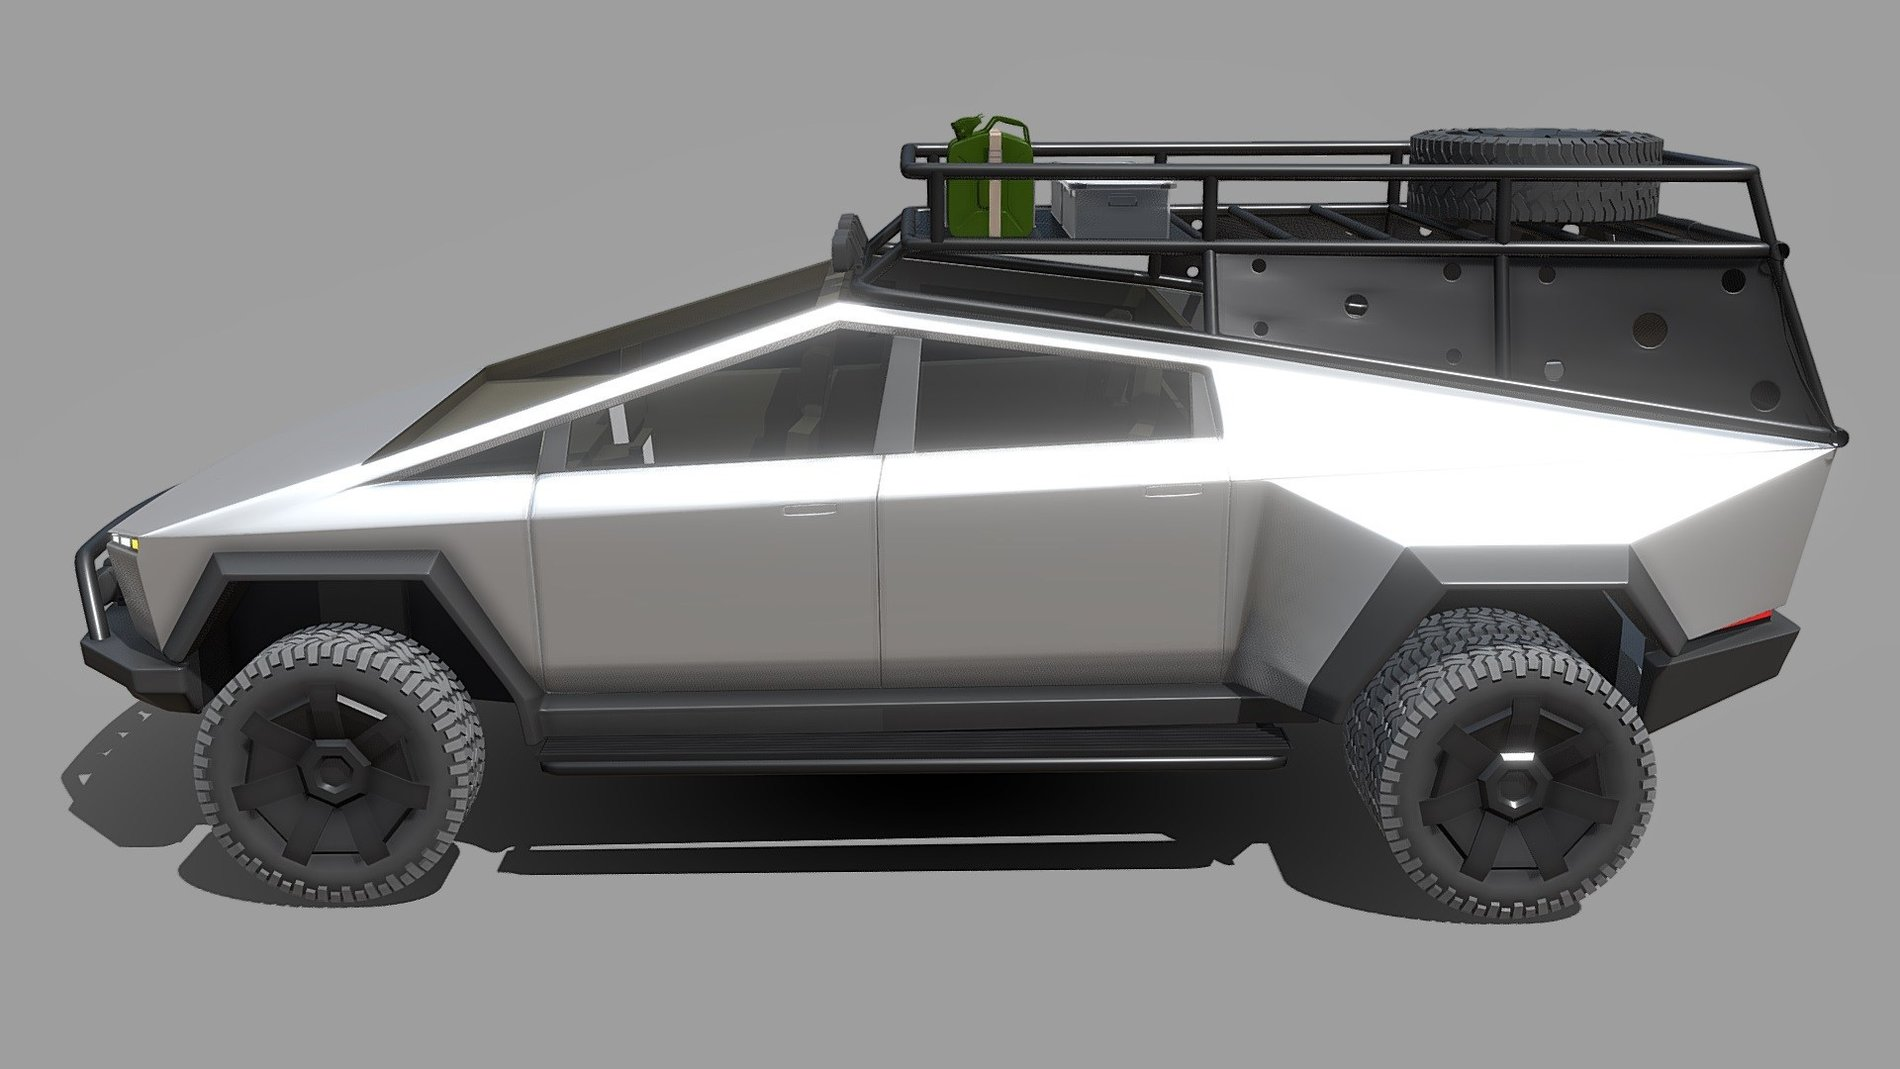 Roof_Bed_Cargo_Rack_Tesla_Cybertruck_OffRoad_002.jpg